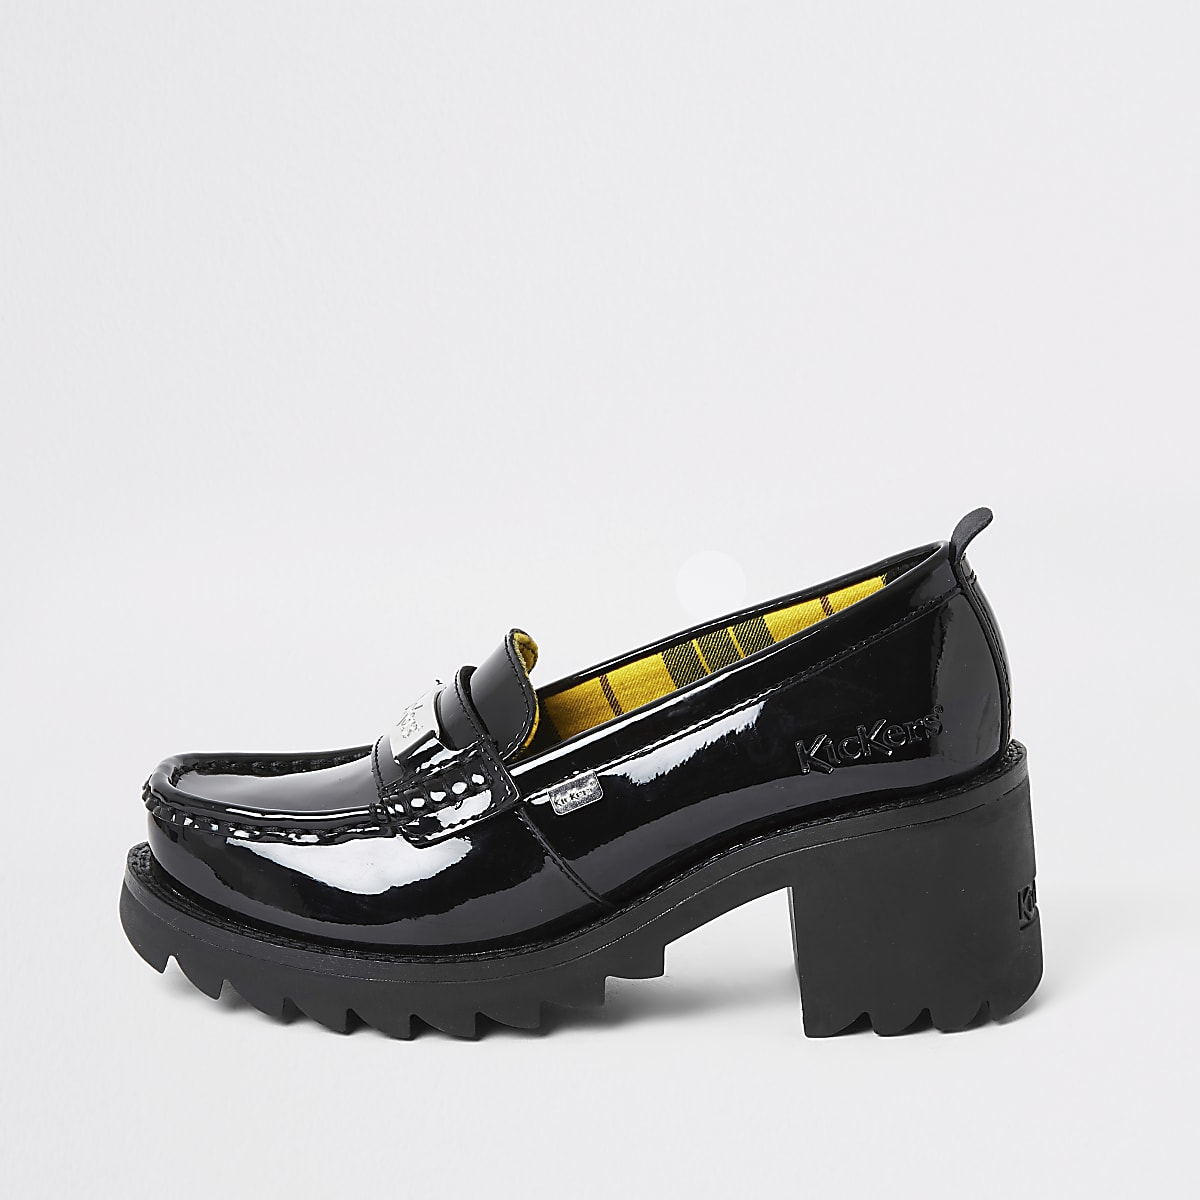 Kickers black leather patent heeled loafers